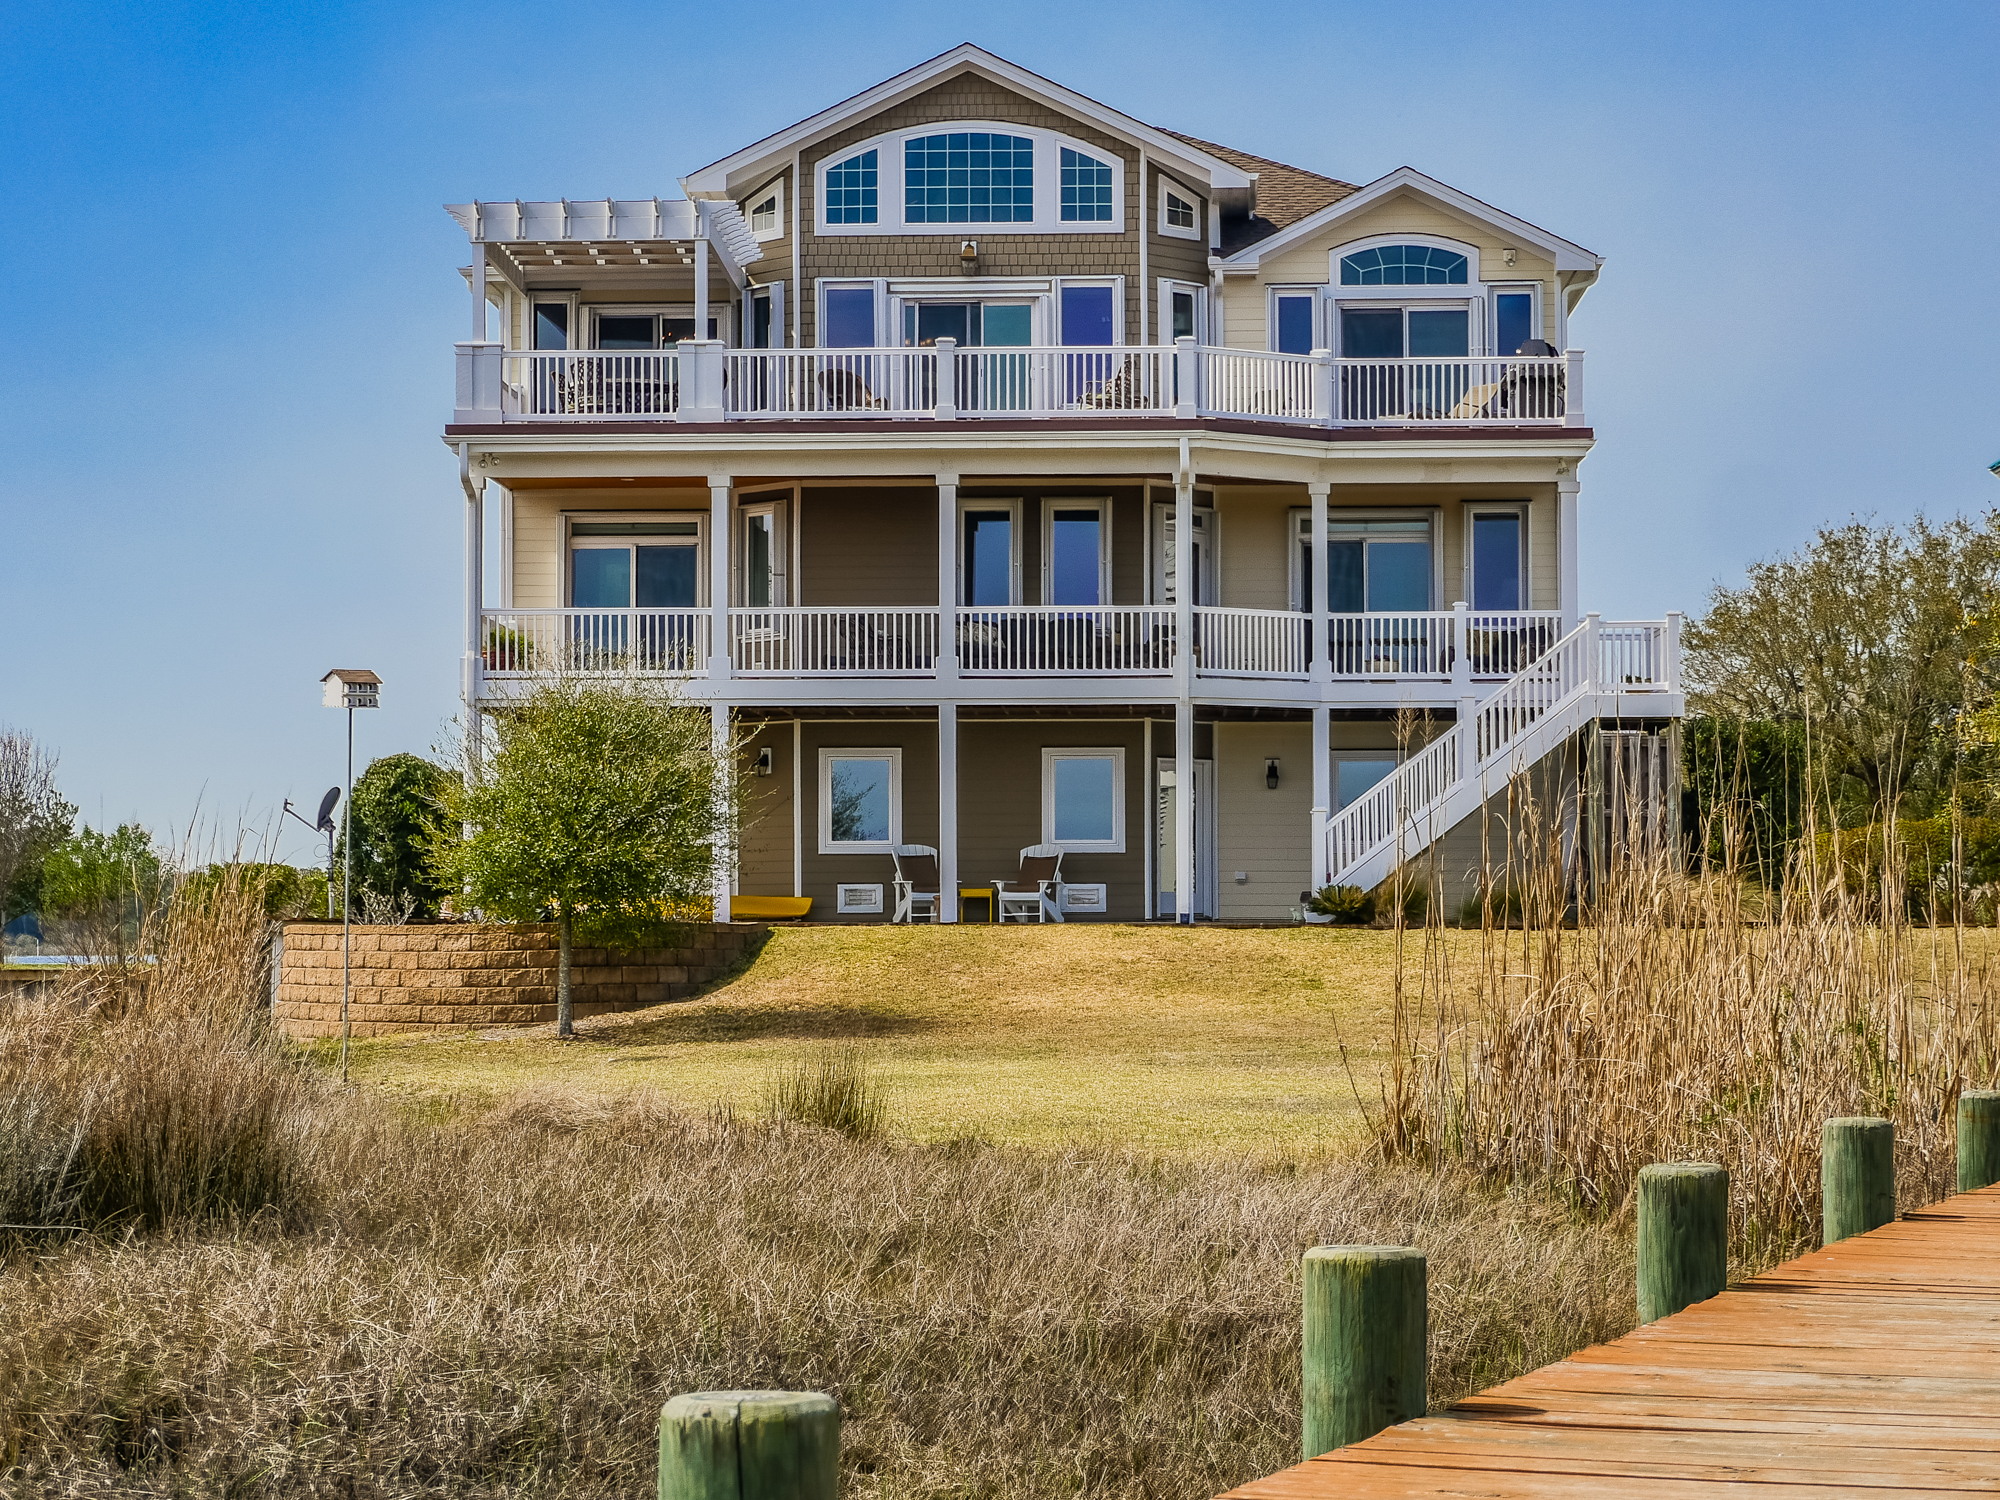 Casa para uma família para Venda às Fisherman's Dream Home 162 Big Hammock Point Sneads Ferry, Carolina Do Norte, 28460 Estados Unidos